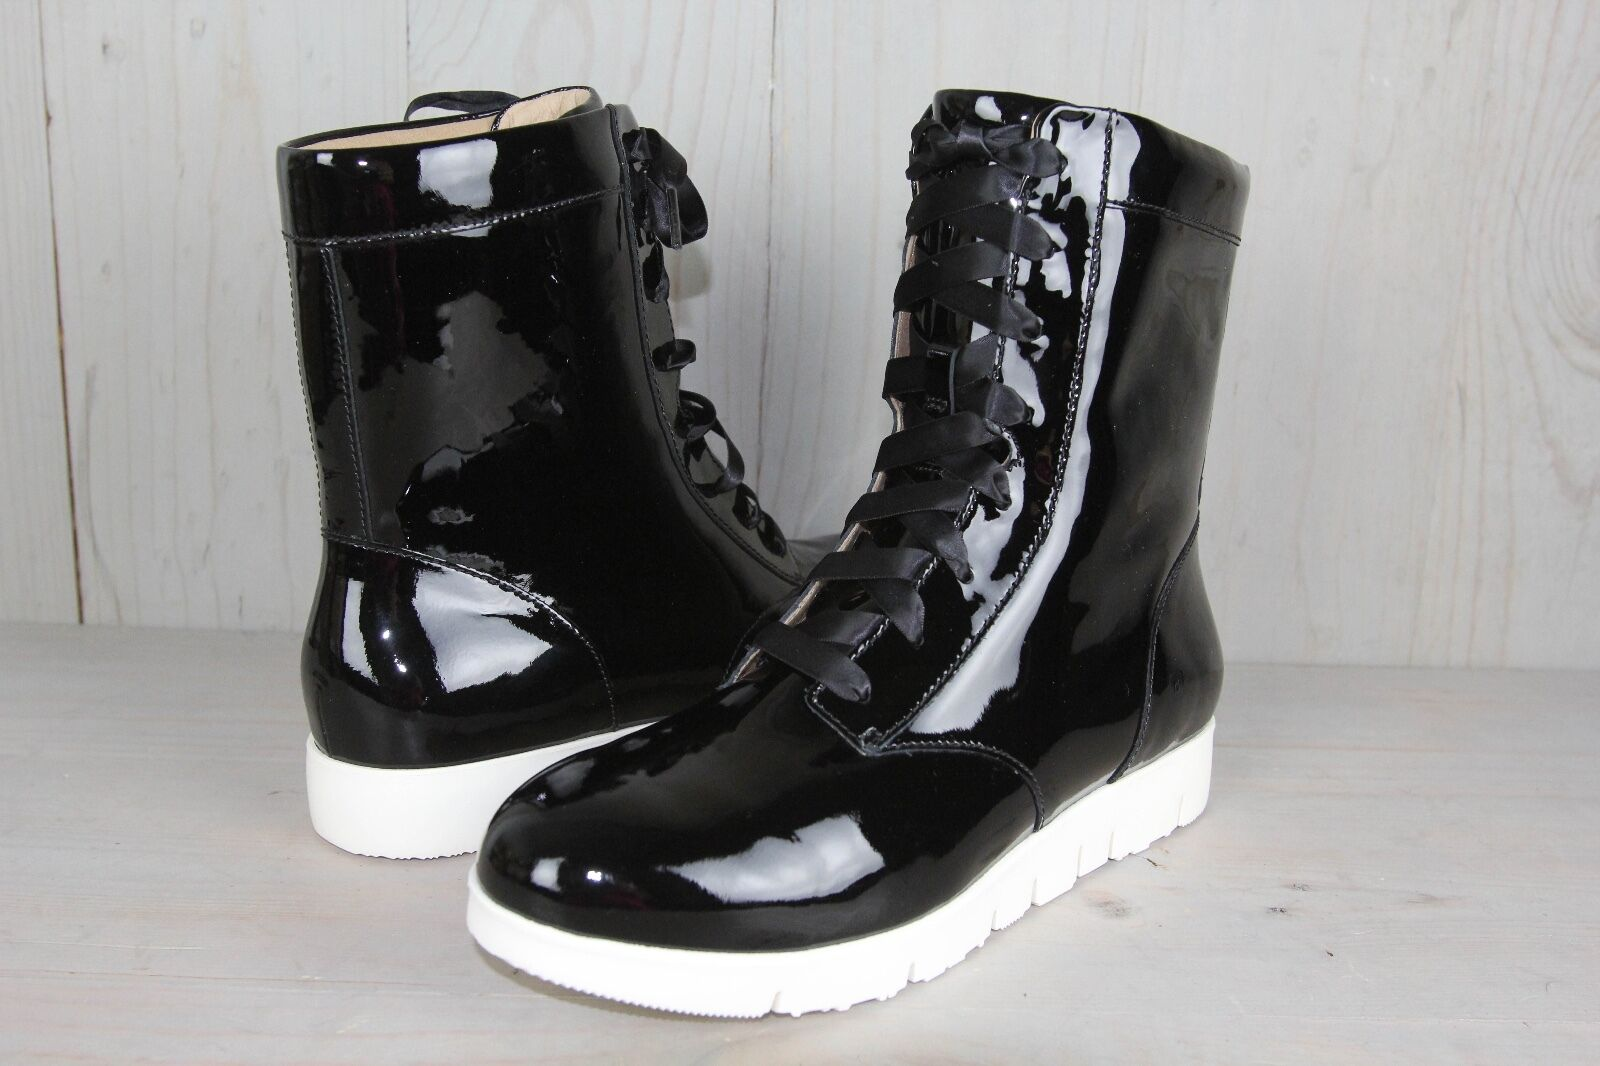 TSUBO EMILEE BLACK HIGH TOP PATENT LEATHER   BOOTS WOMENS US 7 NEW